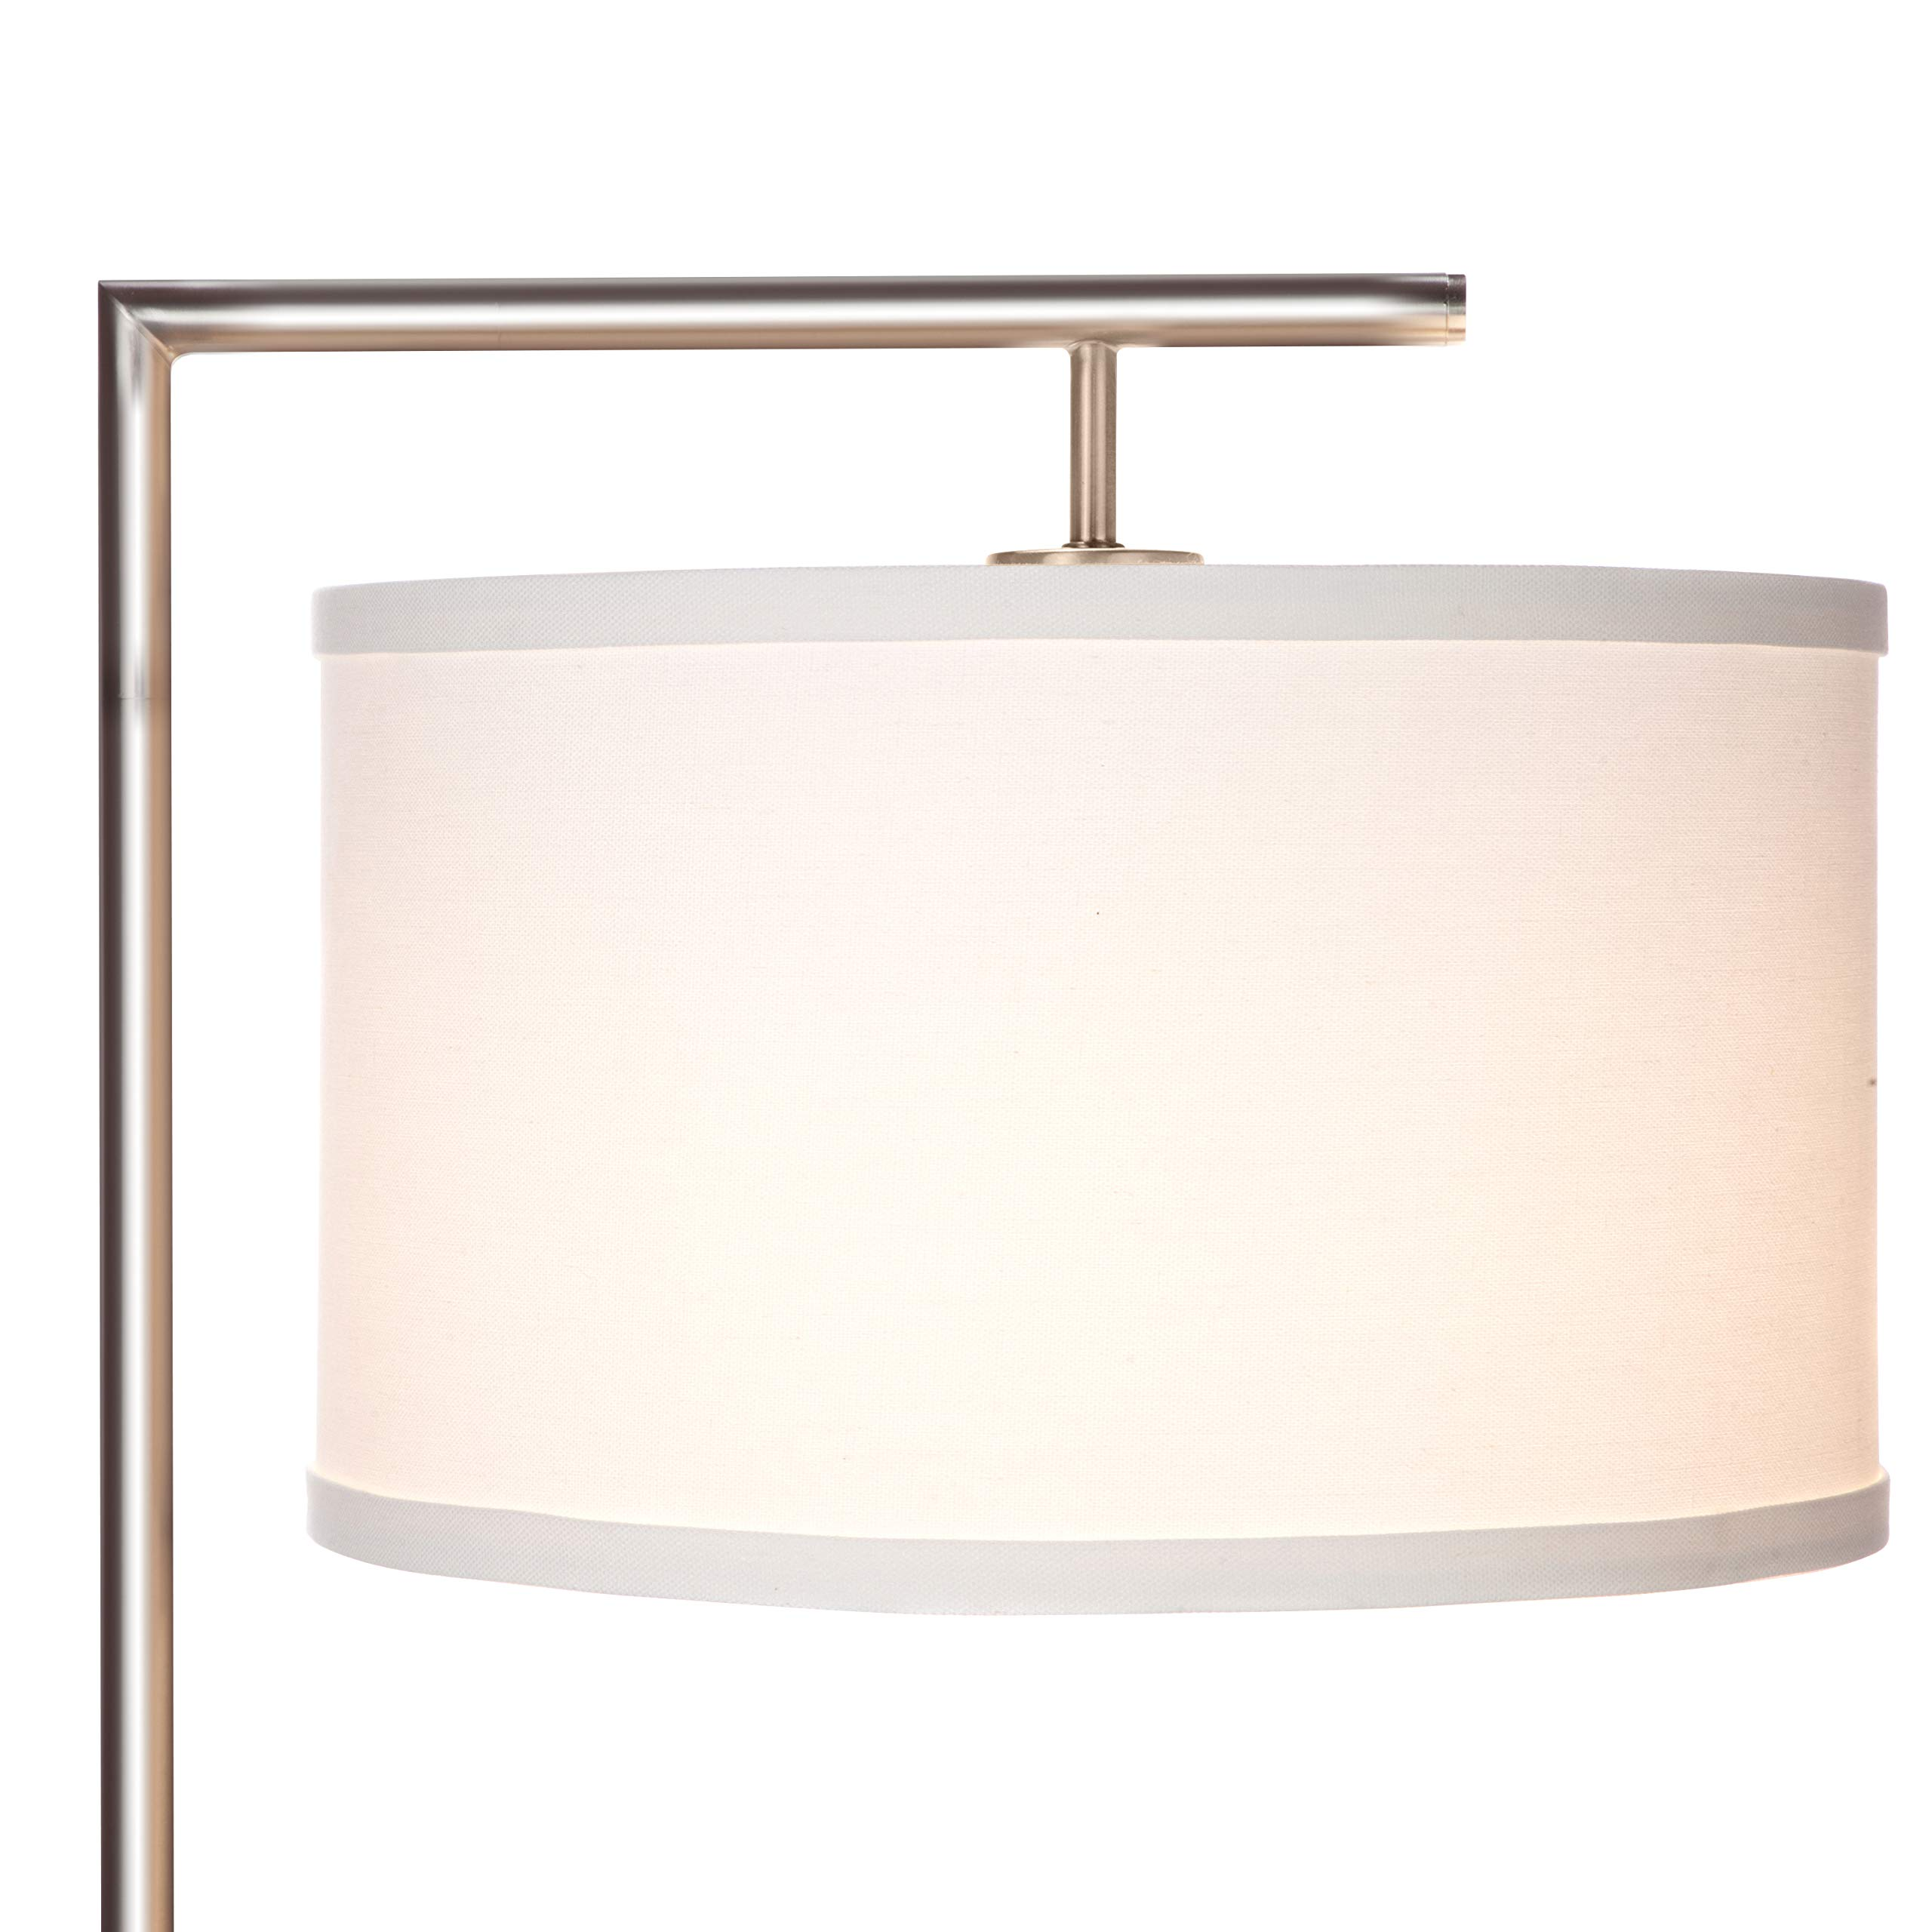 Brightech Montage Modern - LED Floor Lamp for Living Room- Standing Accent Light for Bedrooms, Office - Tall Pole Lamp with Hanging Drum Shade - Satin Nickel by Brightech (Image #2)